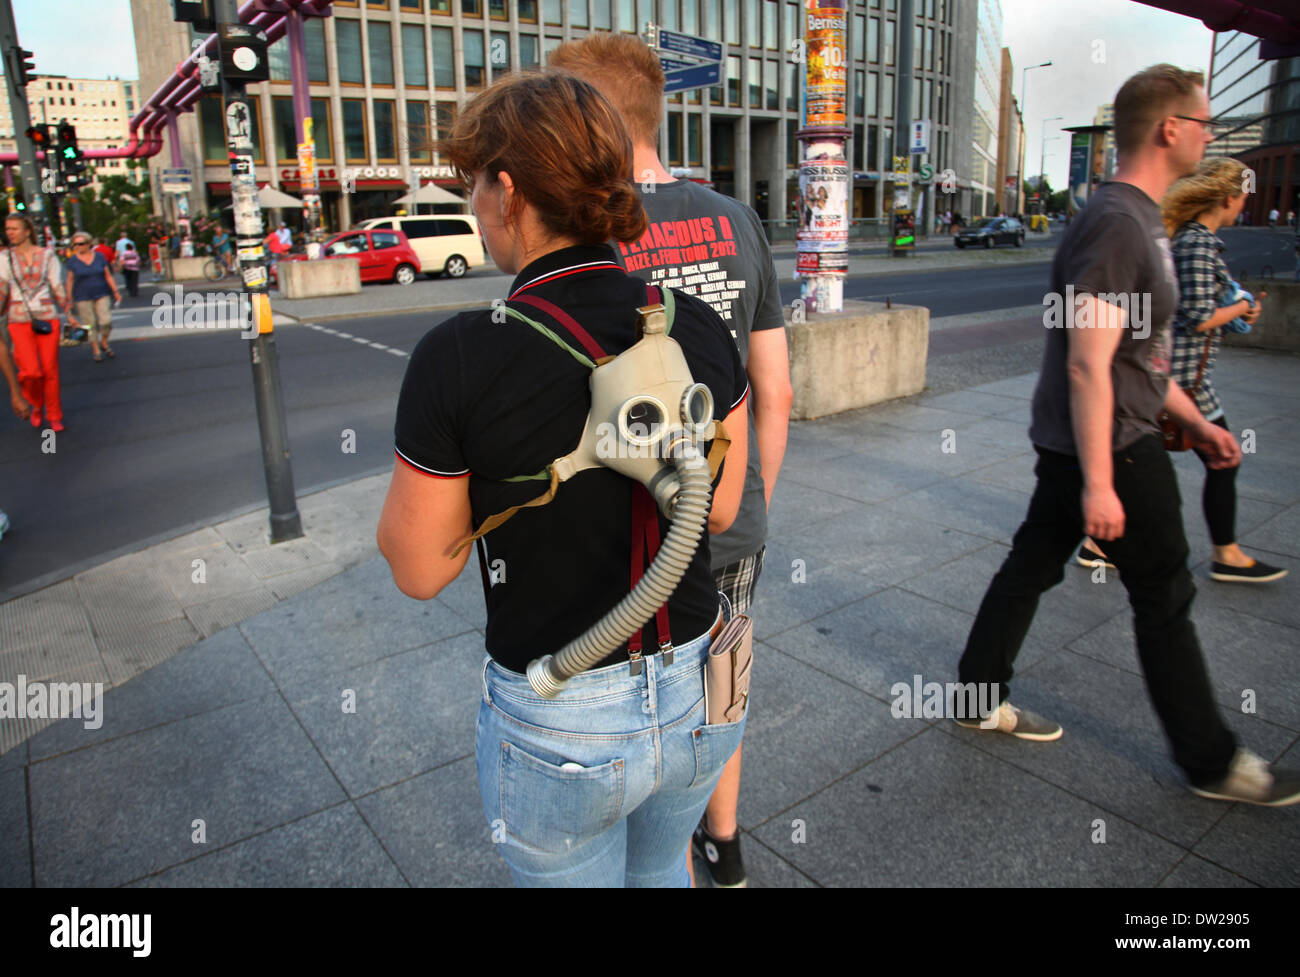 A German tourist carries a gas mask at Potsdamer Platz in Berlin, August 08, 2013. More and more tourists come to Stock Photo